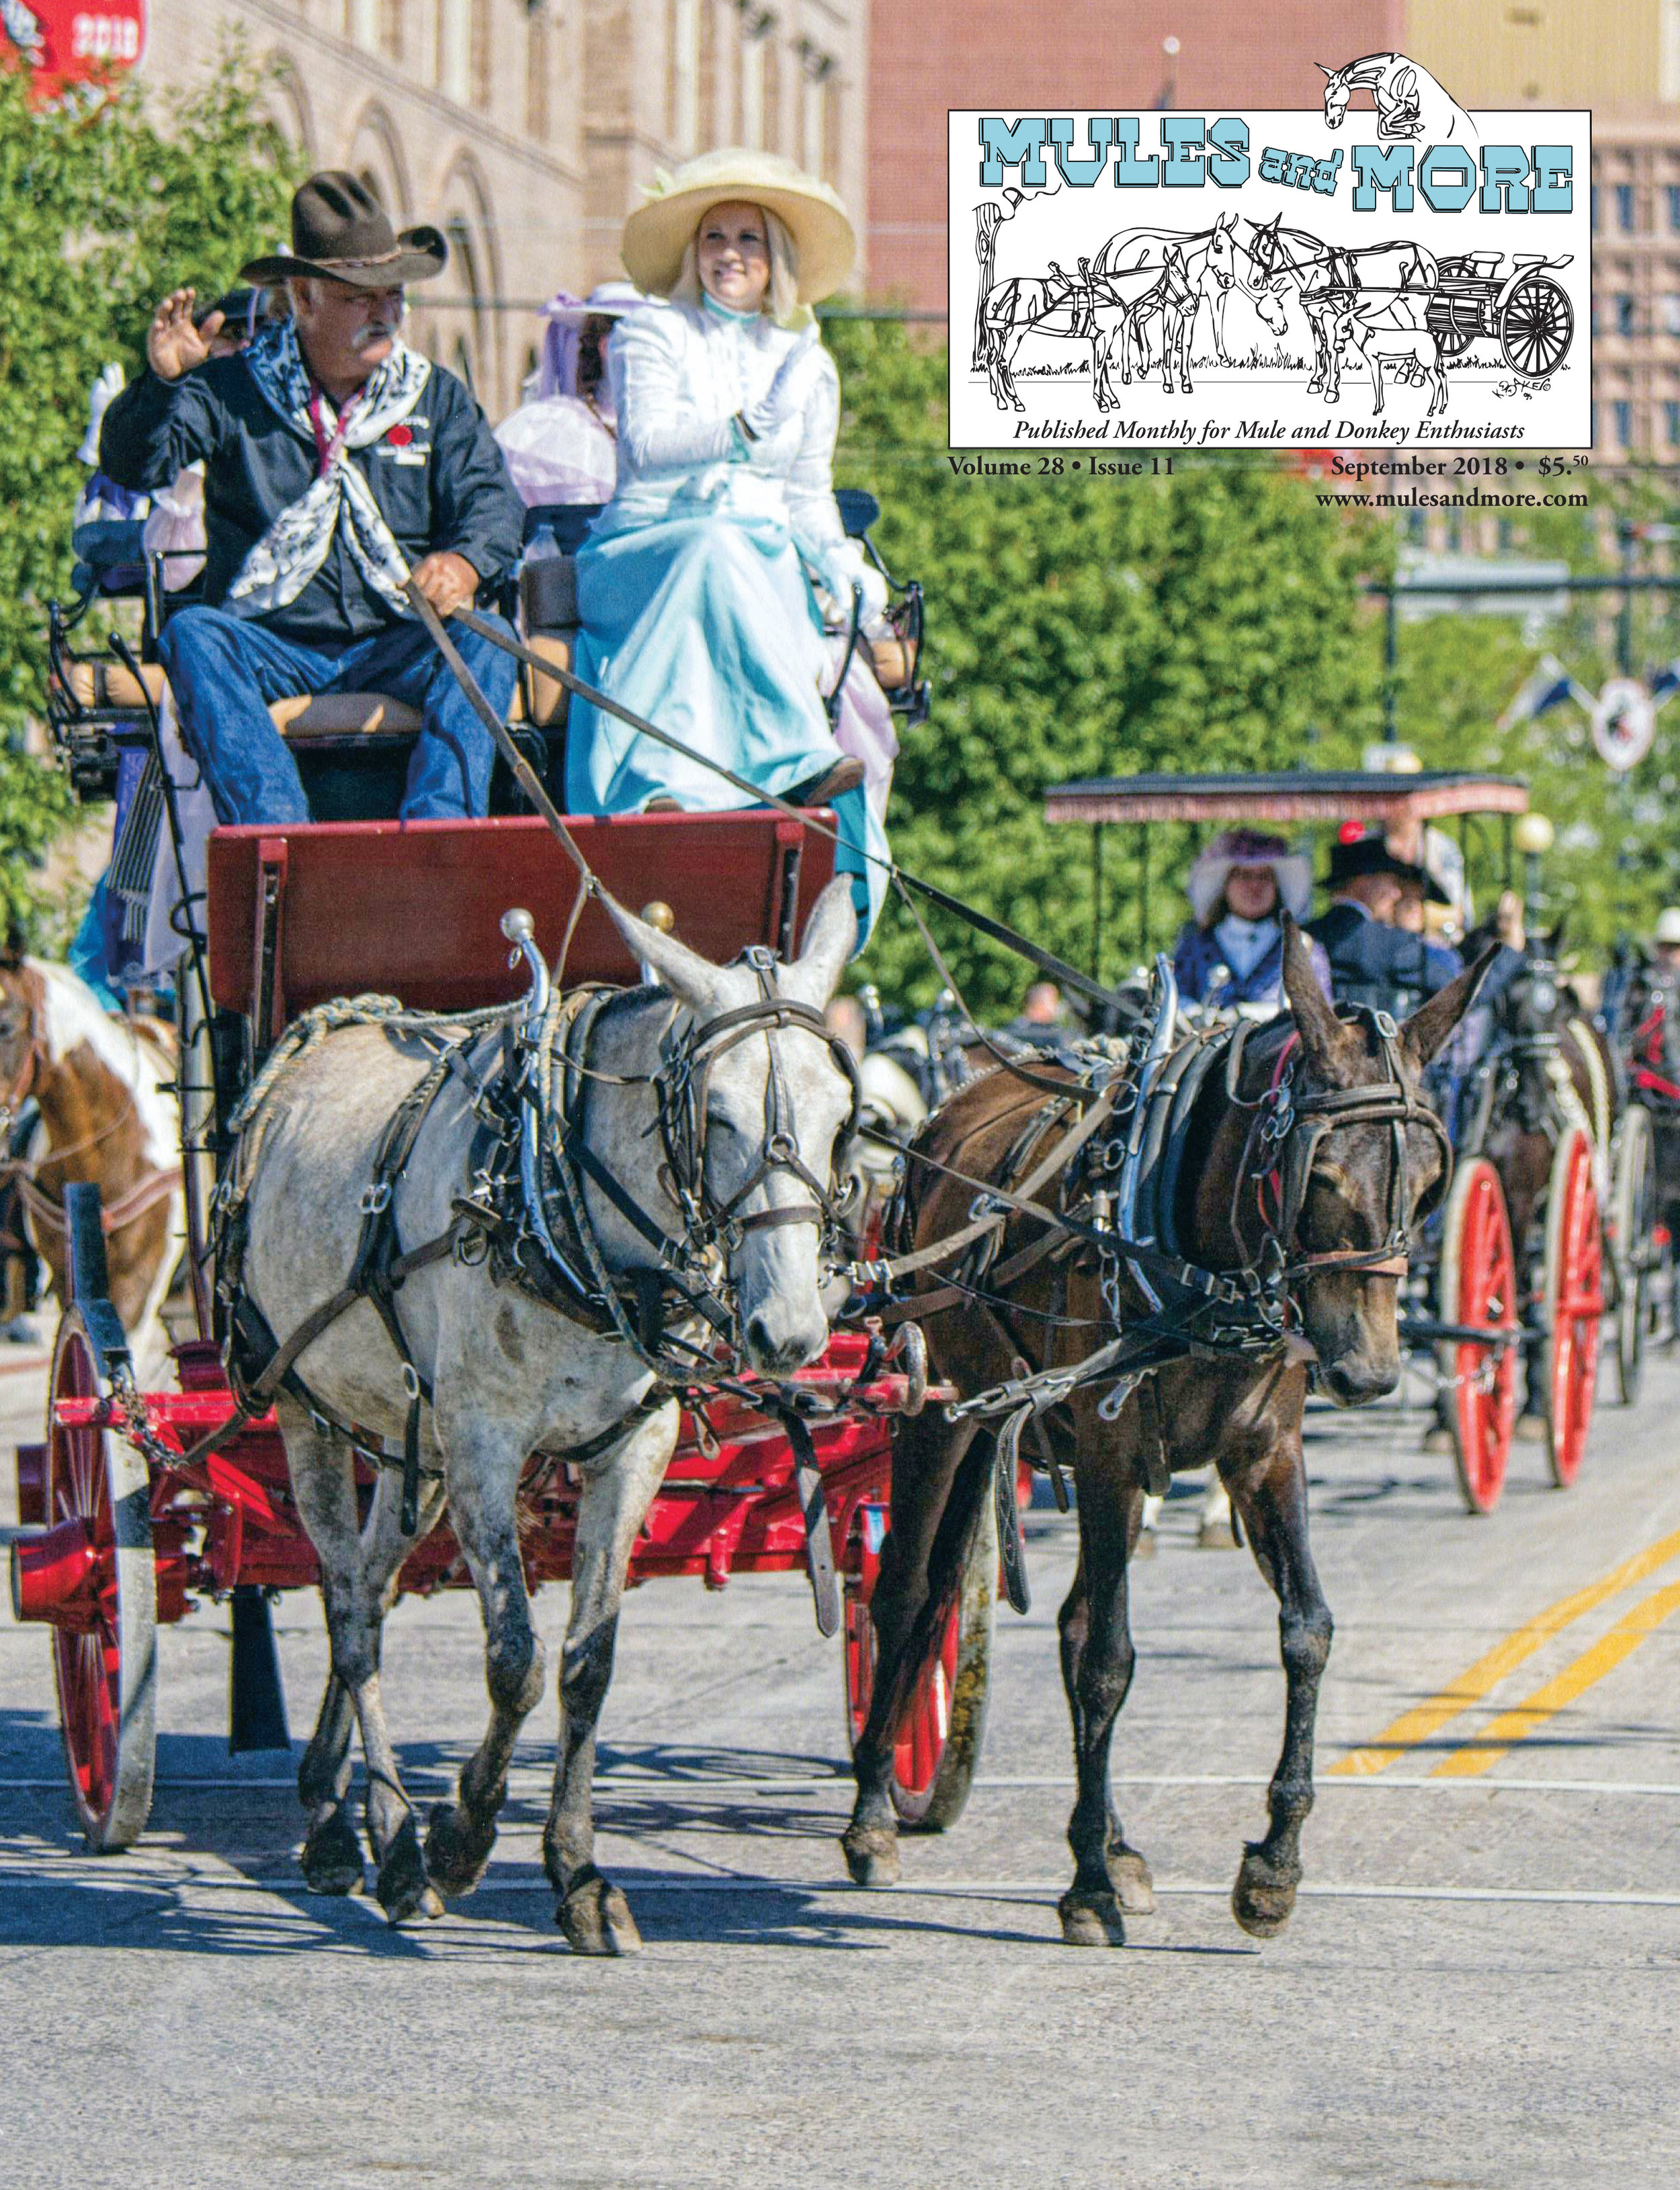 JERRY STROUP in the Grand Parade during Cheyenne Frontier Days in Cheyenne, Wyo., with his team, Roxie and Judy. JERRY and his wife YOLANDA have participated in the Grand Parade for 14 years and 56 parades.  Photos by Sissy Schneiderman